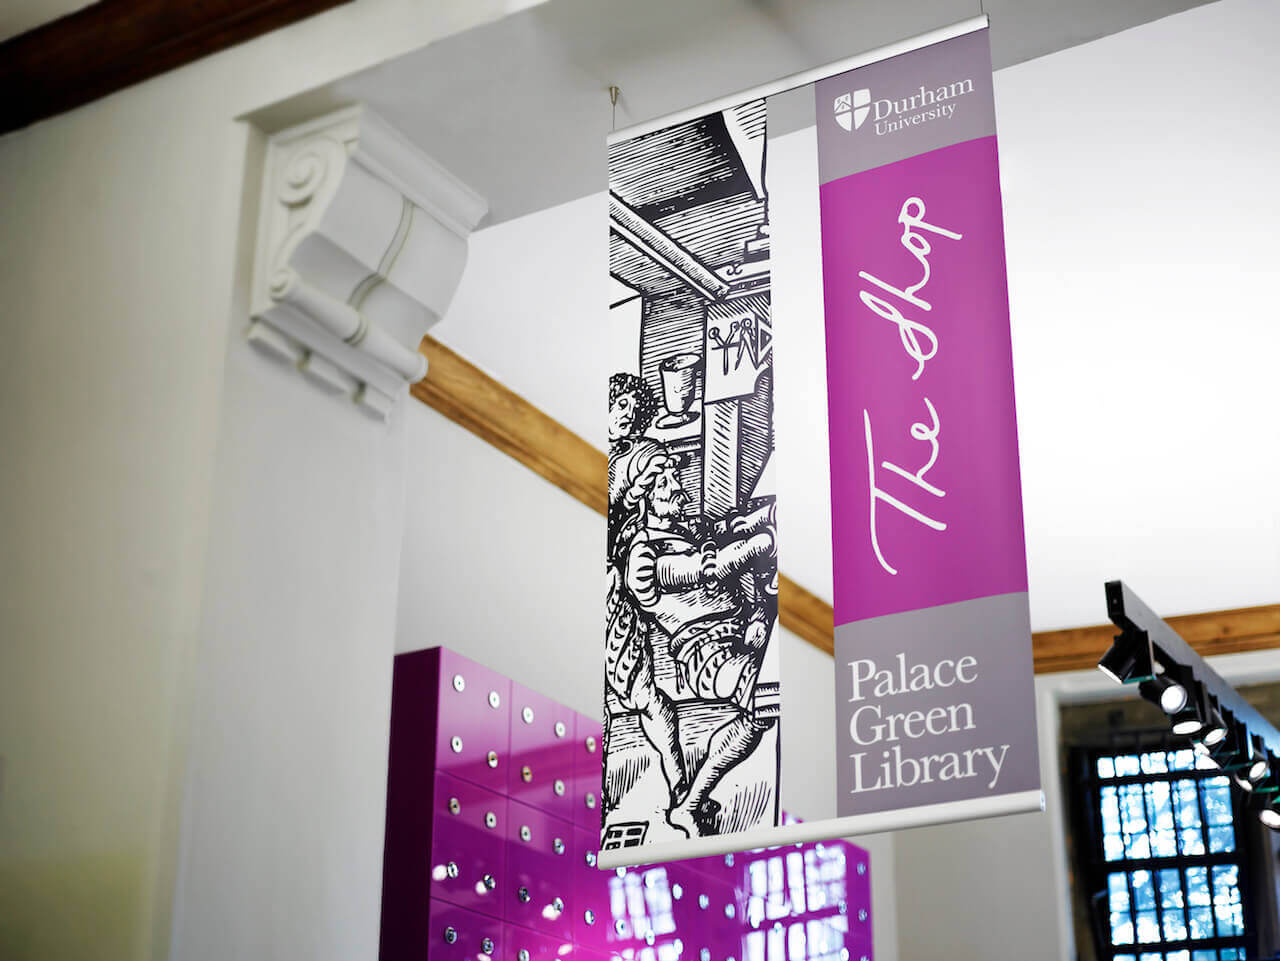 Shop detail banners suspended from the ceilings at Palace Green Library